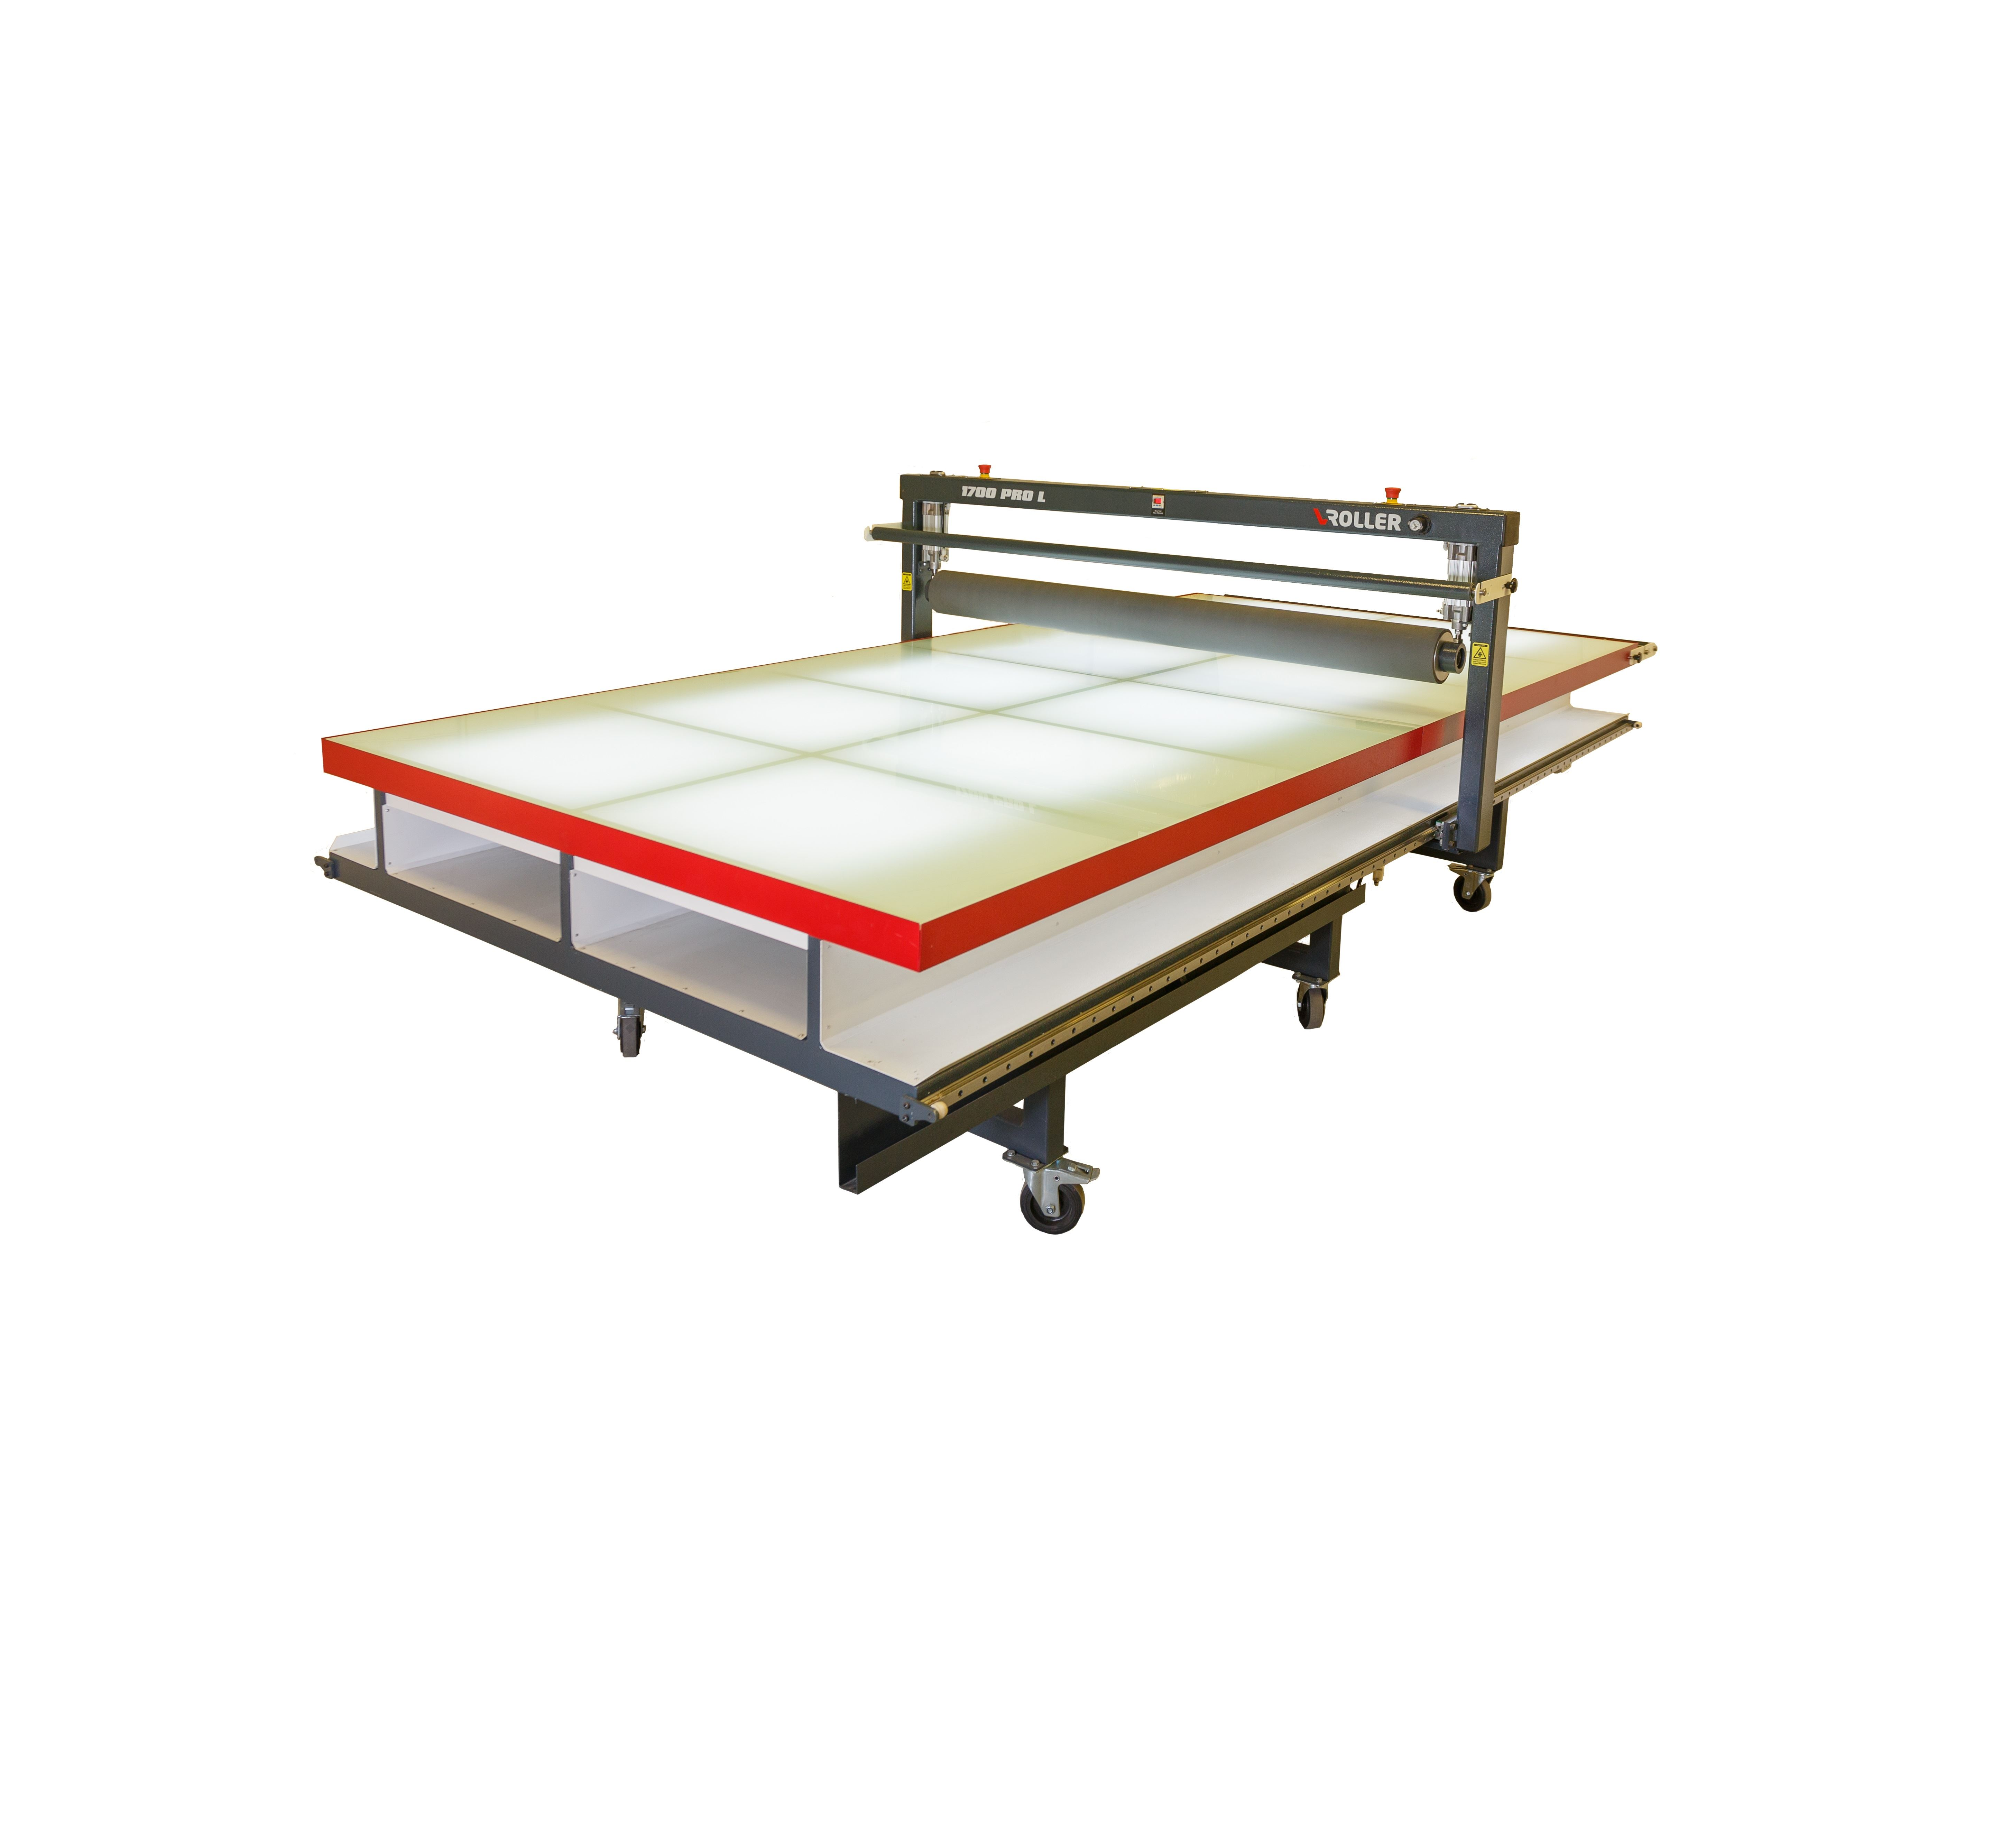 Flatbed laminator pro eurotech for Table exit fly